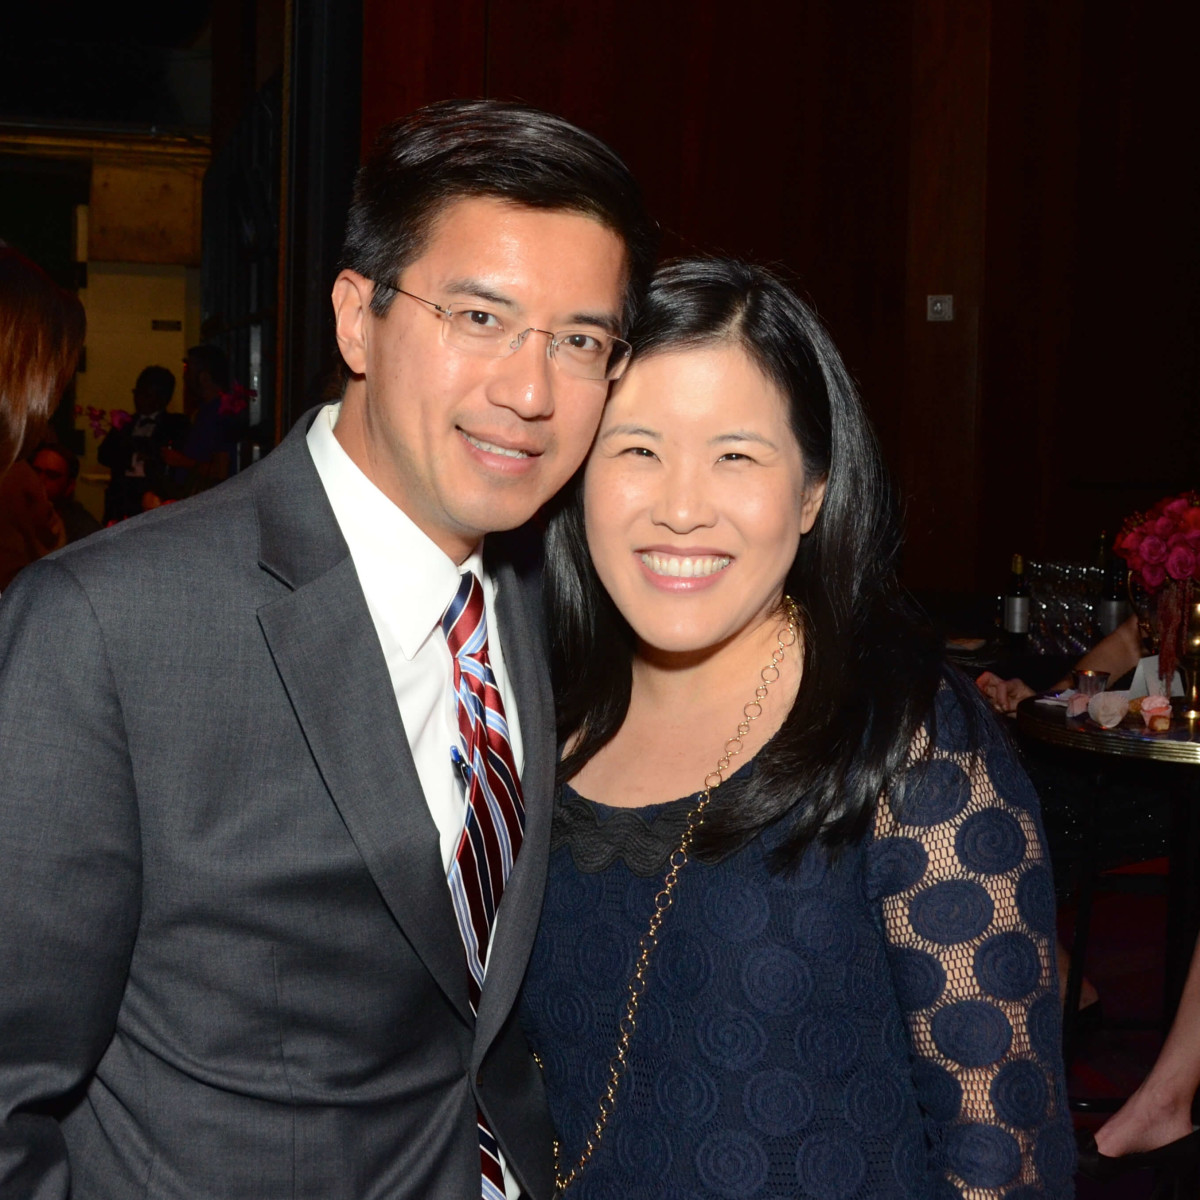 Houston, Society for Performing Arts gala, Nov. 2016, Michael Chu, Emily Kuo